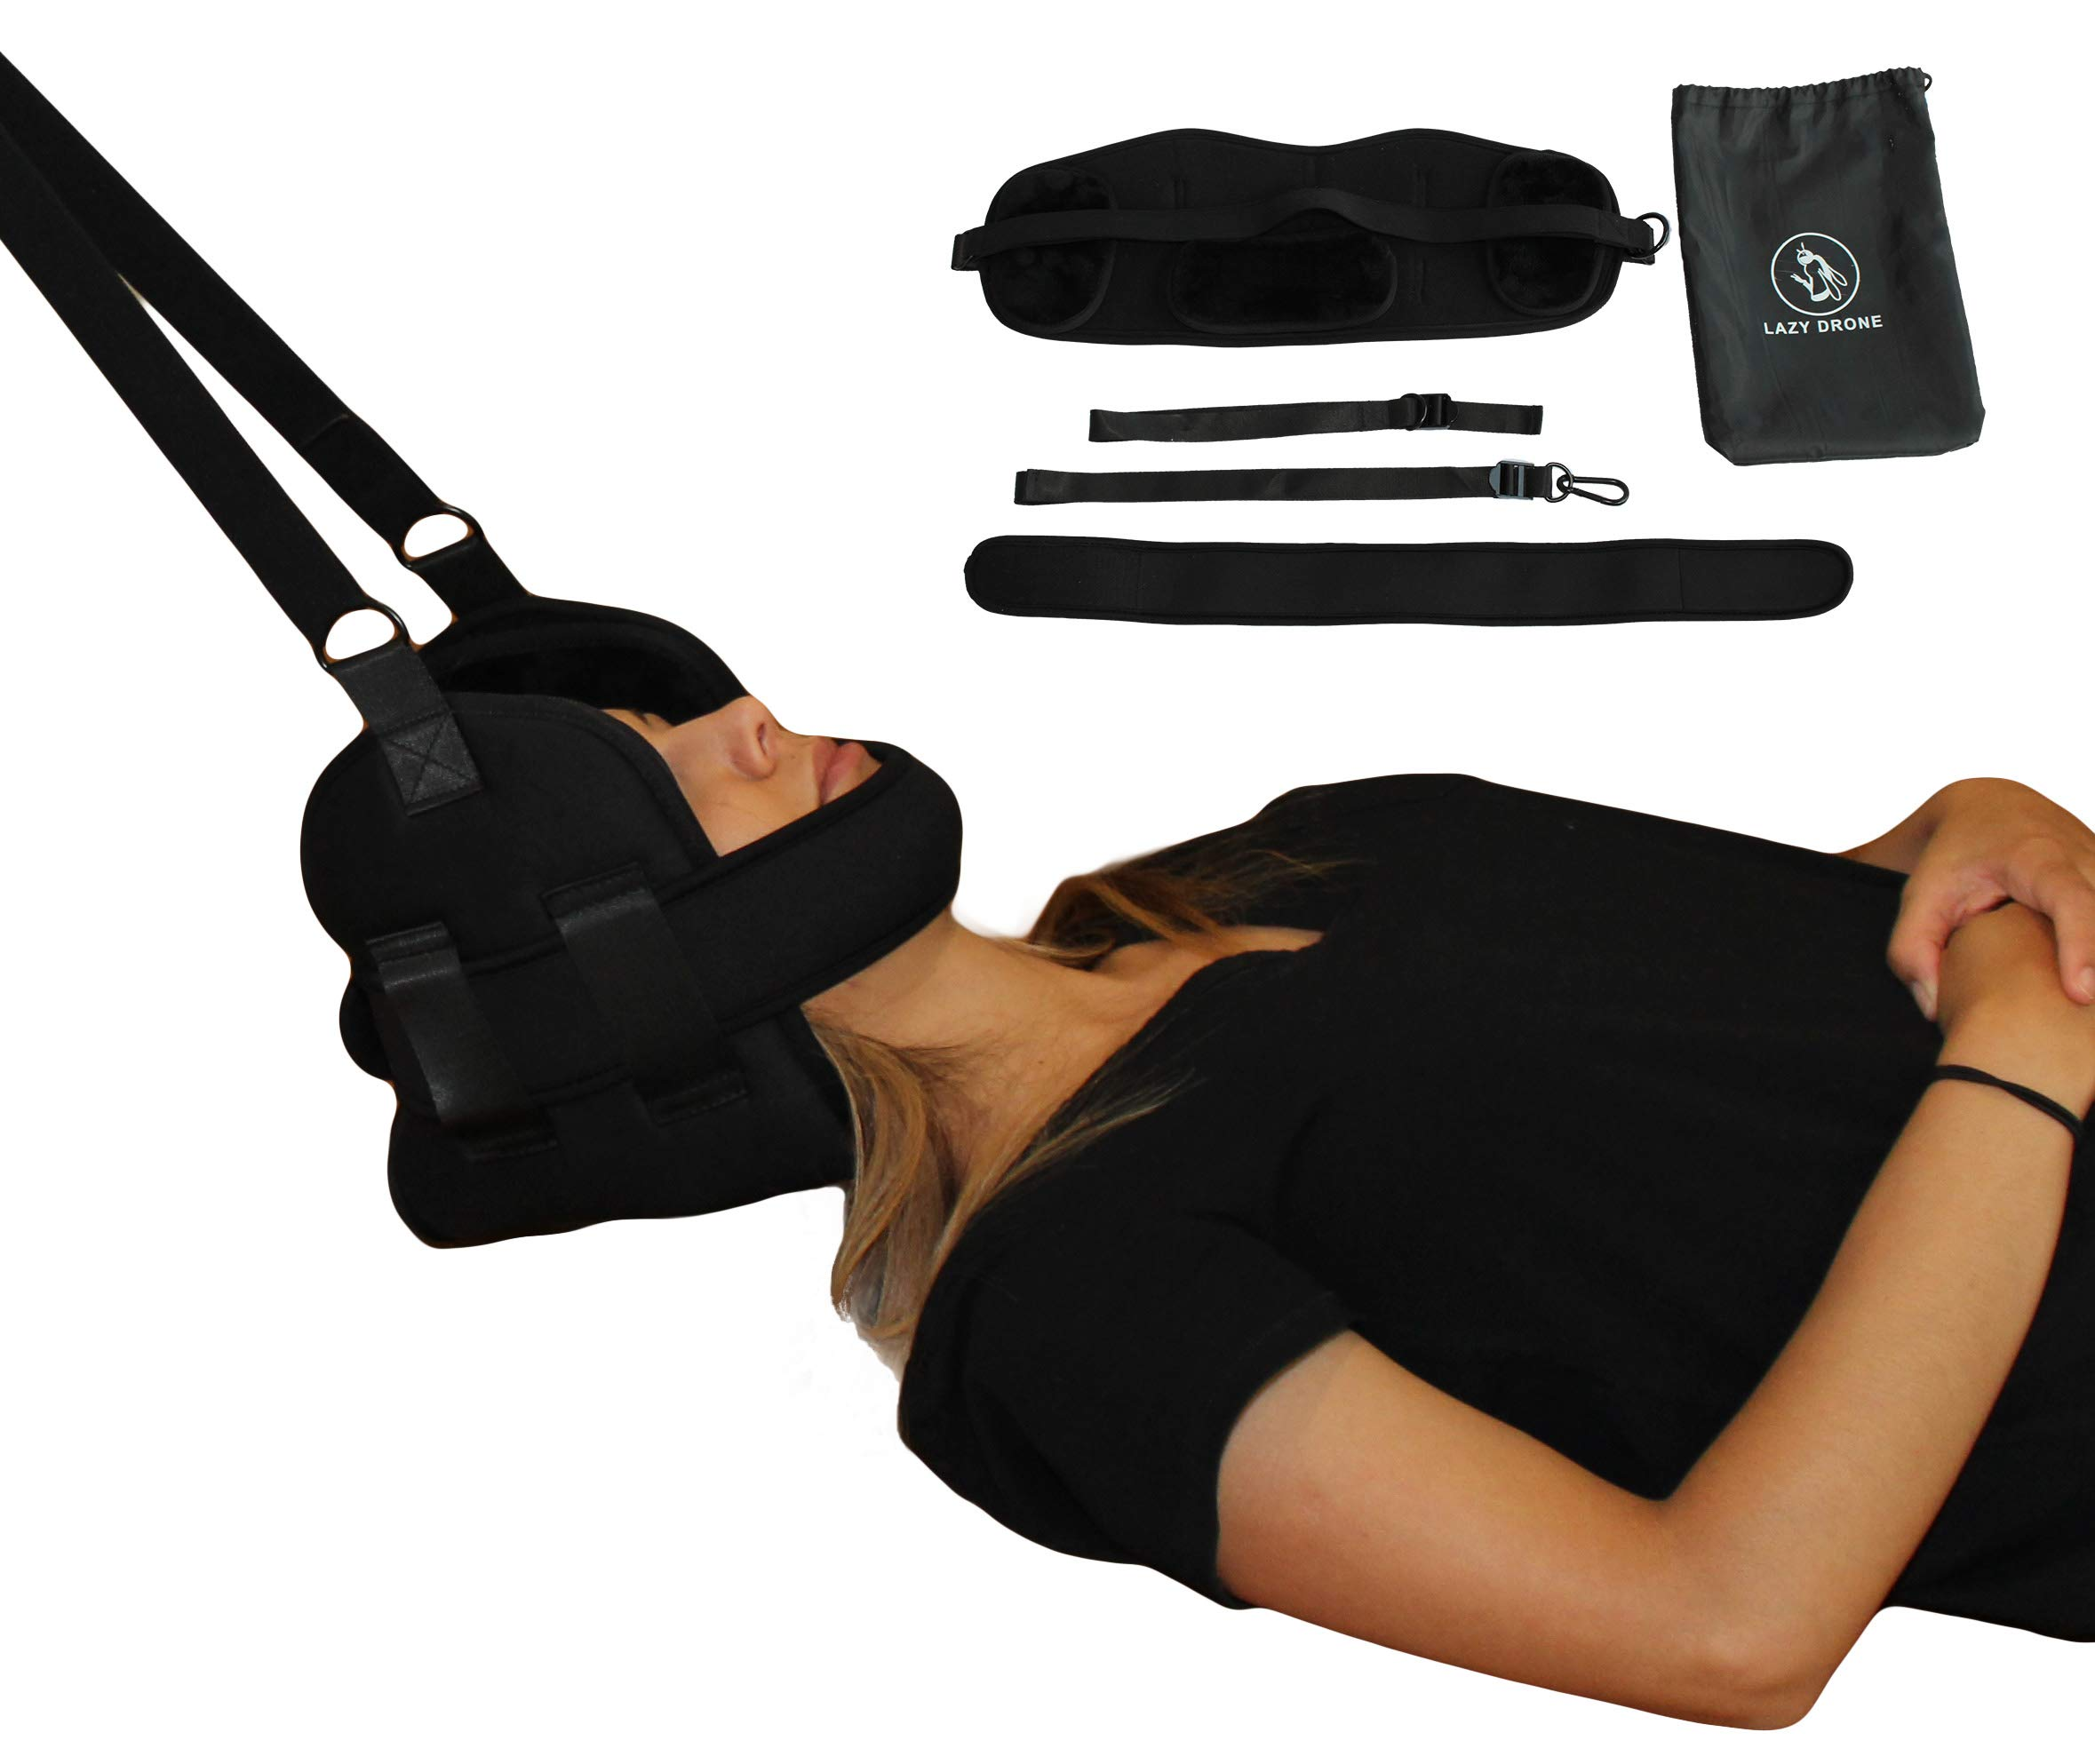 Lazy Drone Enhanced Neck and Cervical Traction for Chronic Neck and Shoulder Pain, Text Neck, Correct Poor Posture, Stress Relief; Portable Hammock Sling for Home or Office Physical Therapy by Lazy Drone Market